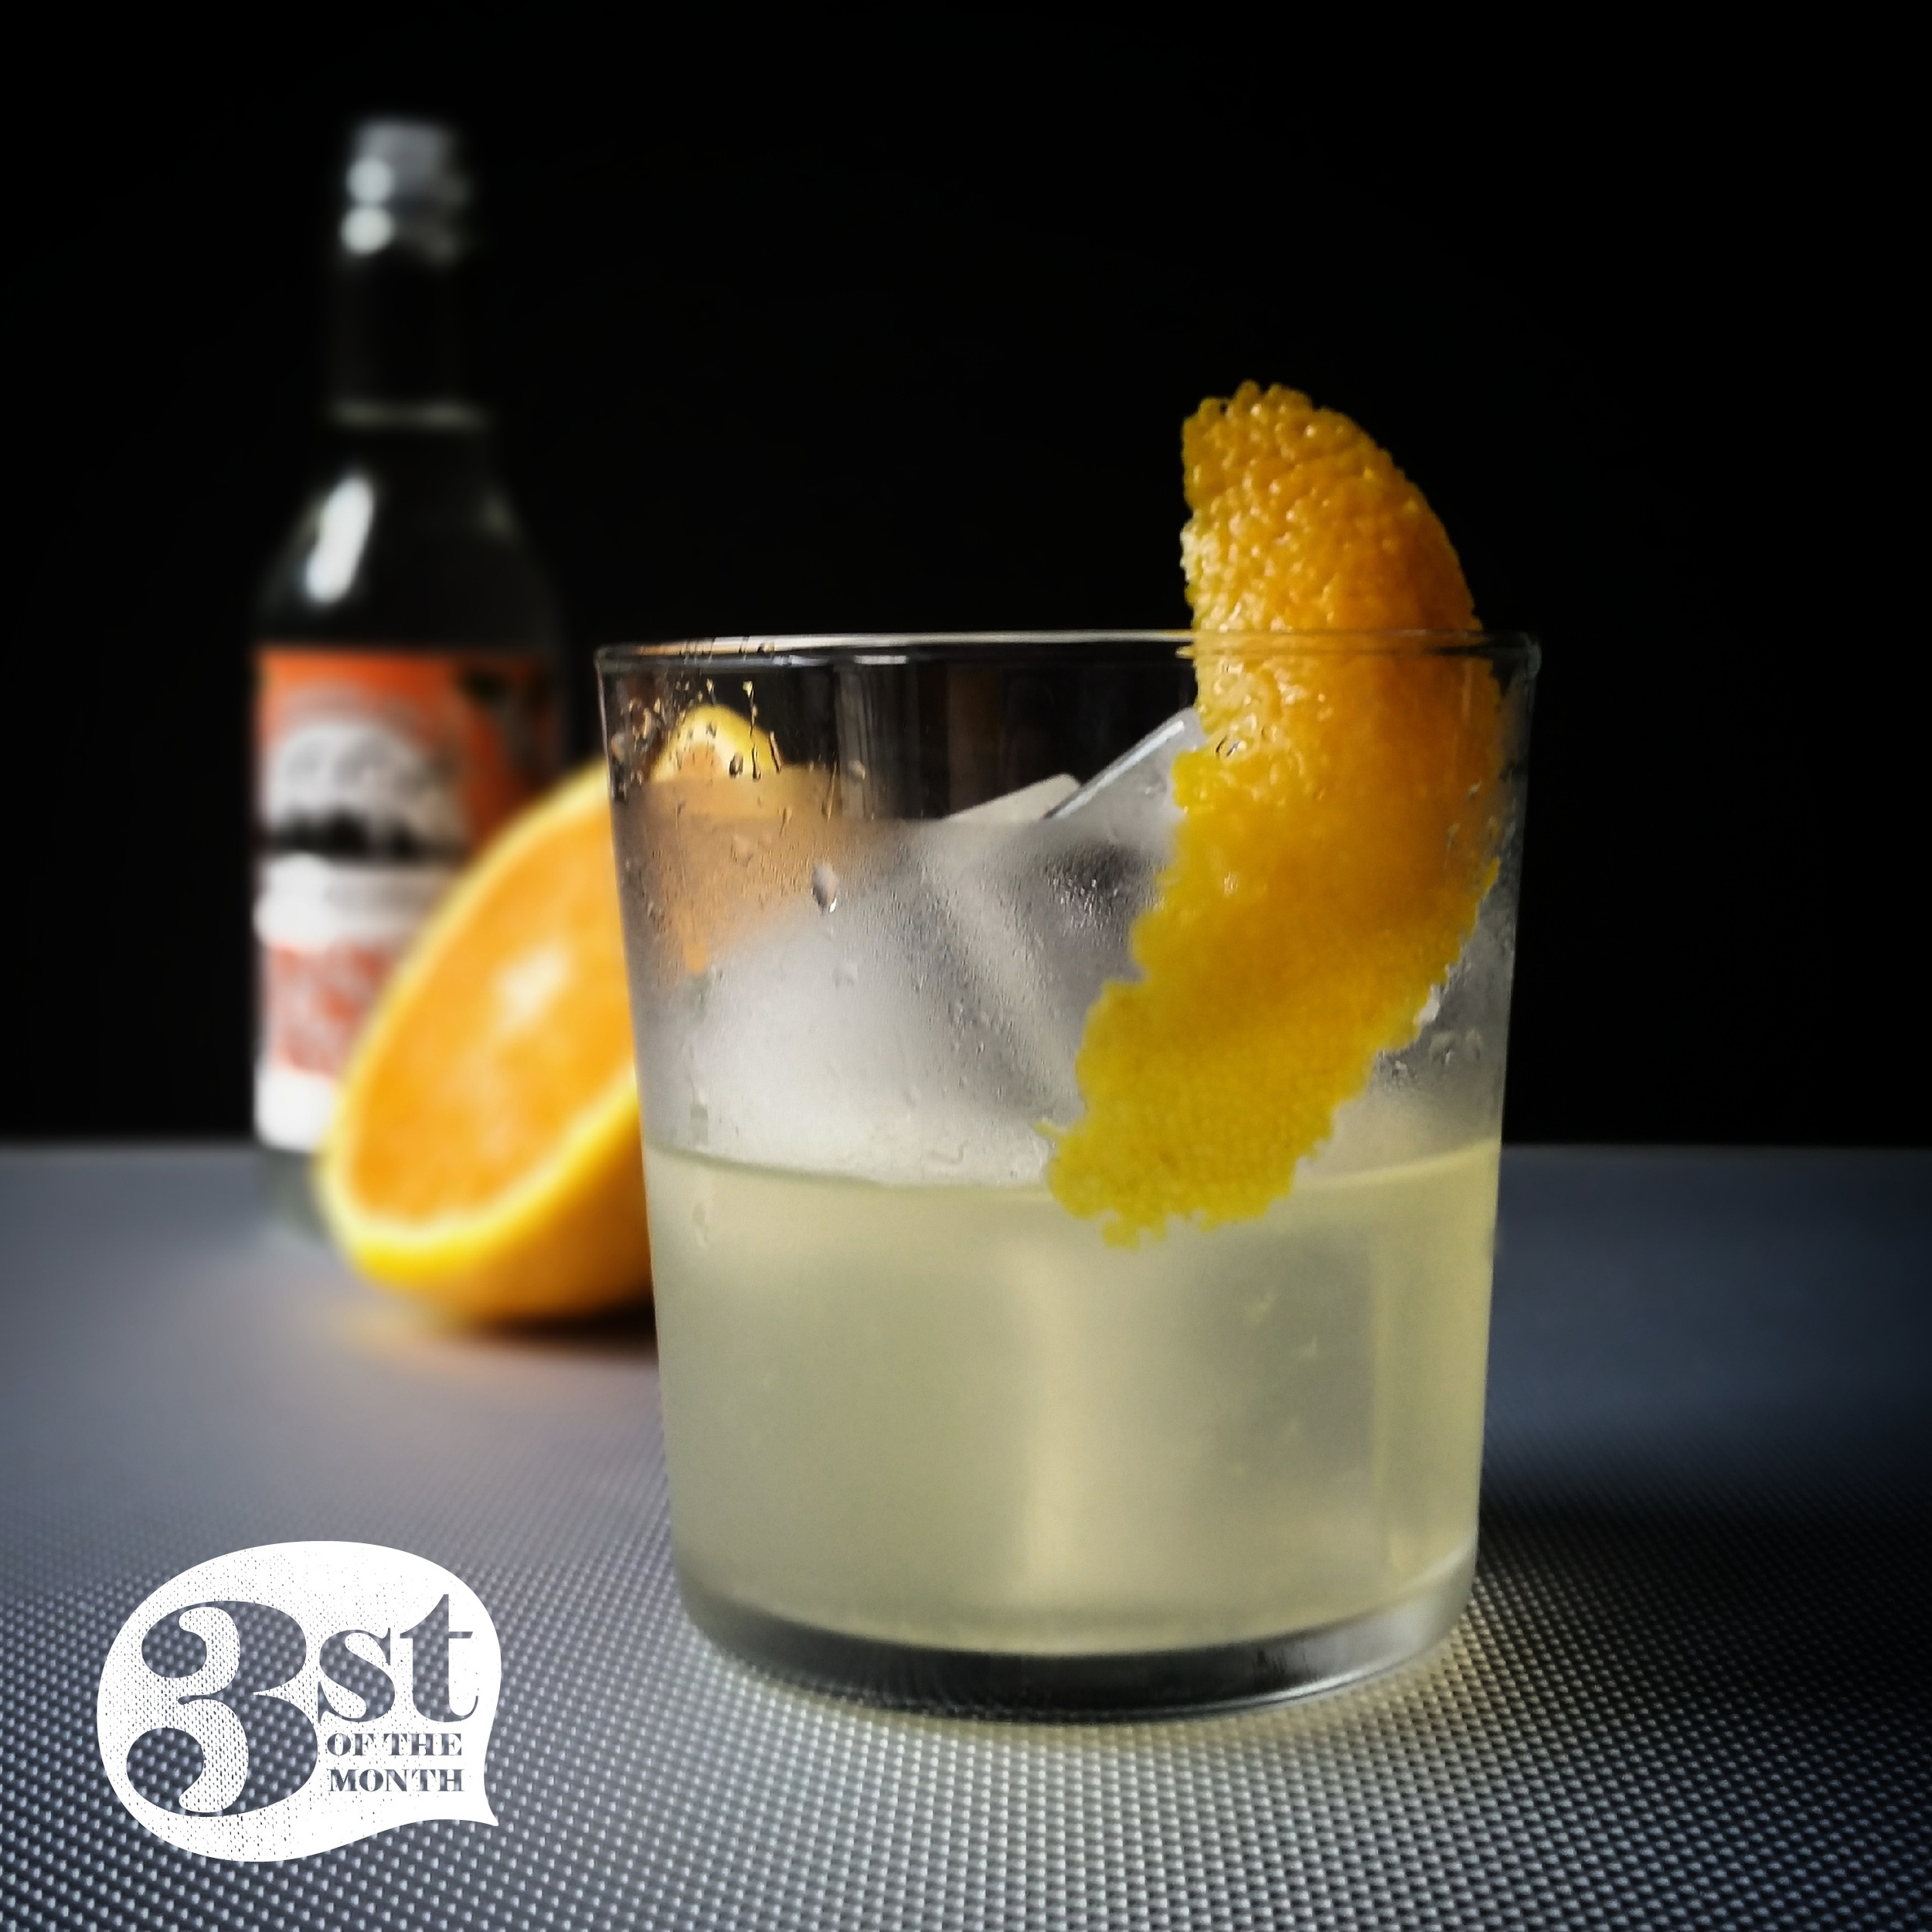 3st of the Month's Jalisco Bloom cocktail - made with tequila, orange liqueur, orange juice and orange flower water